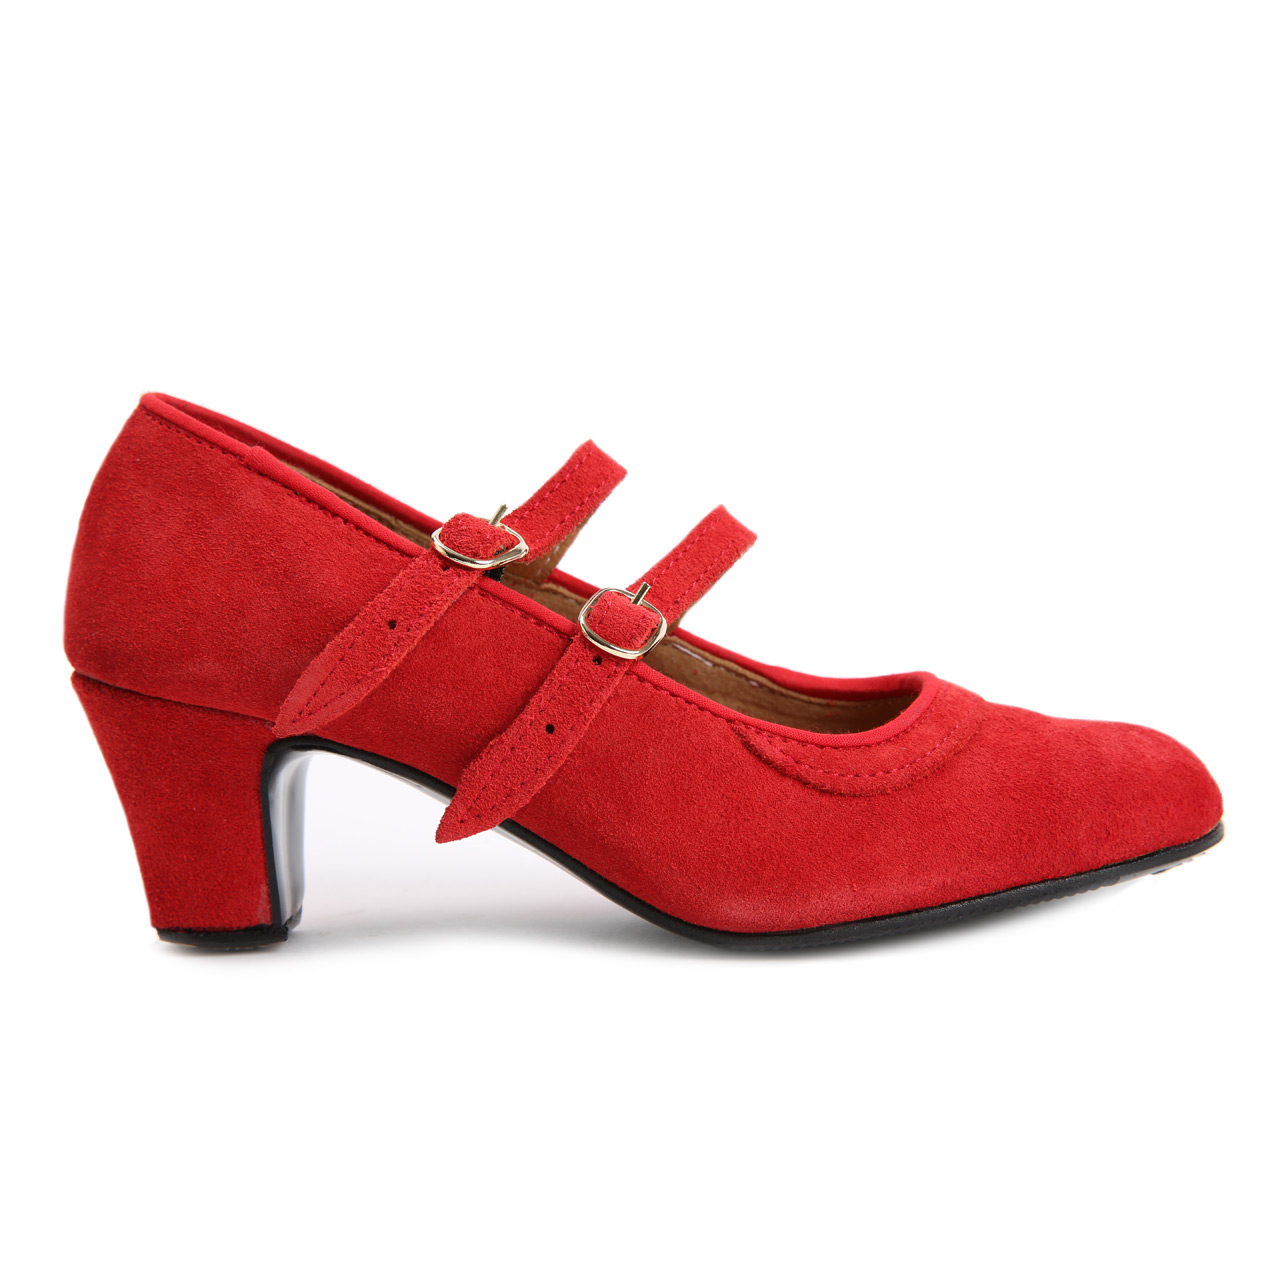 Semi-professional flamenco dance shoes for beginners